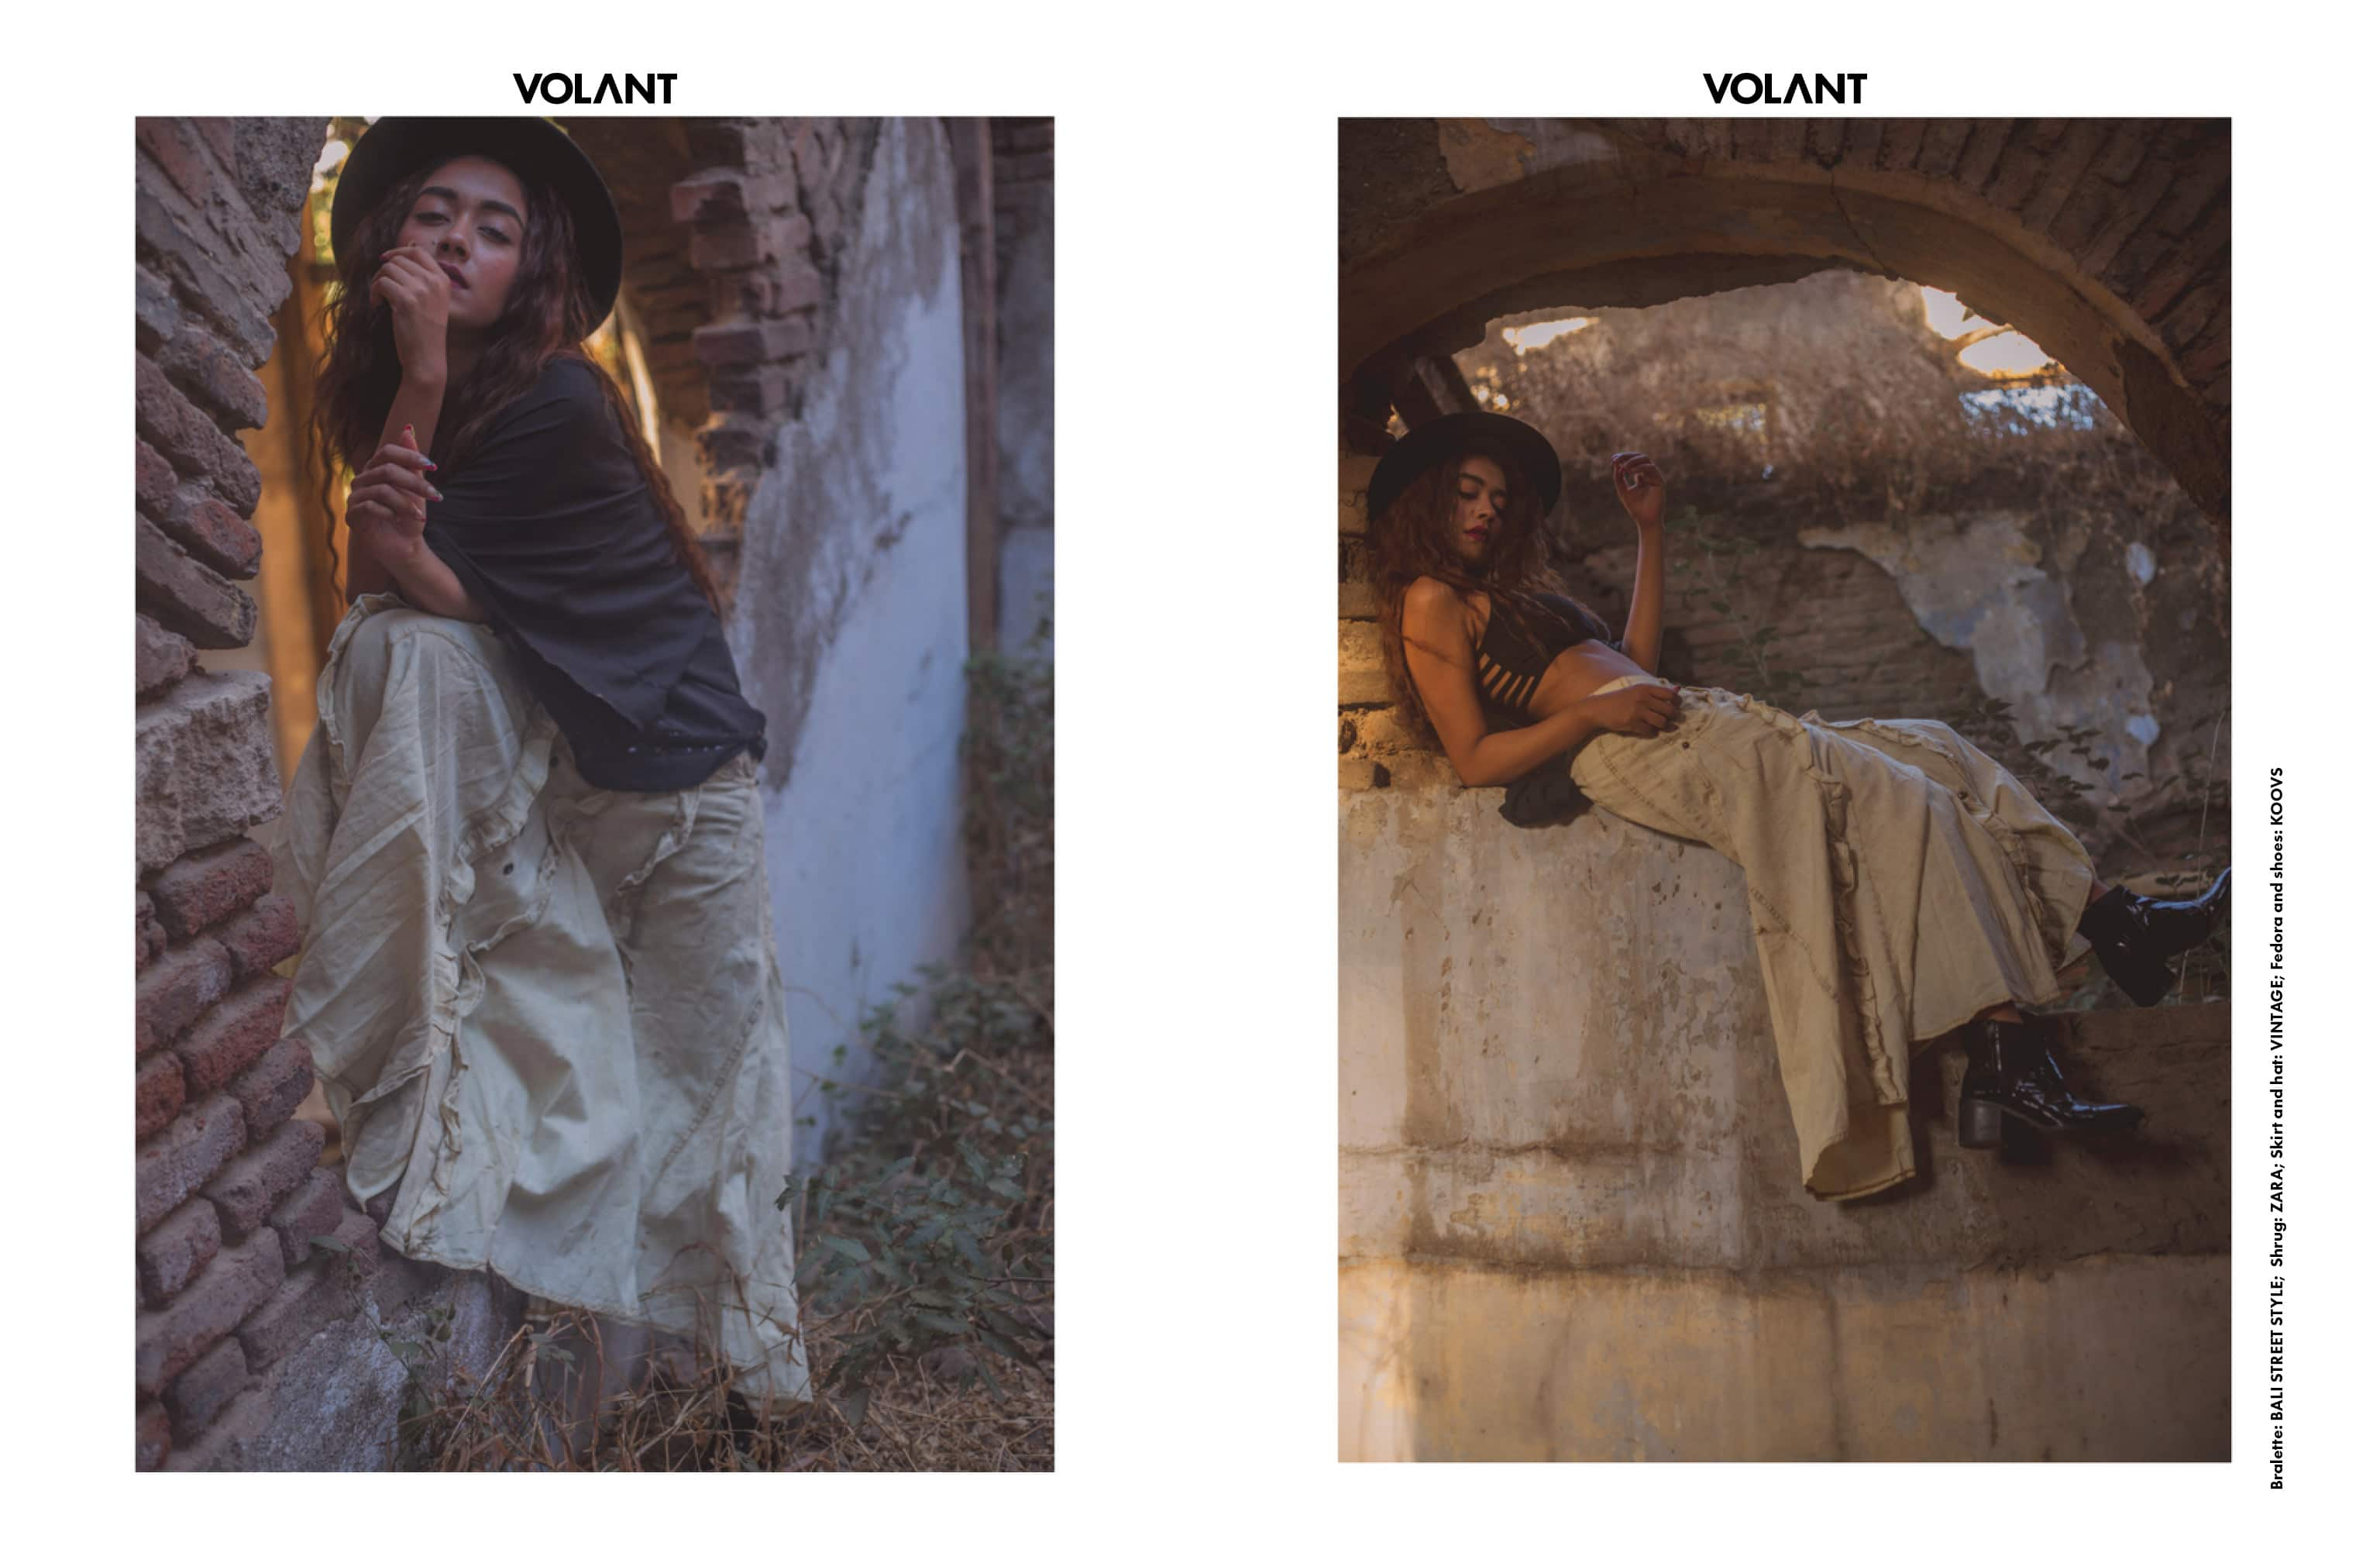 volant-webitorial-todayiwillletthepicturestalk3